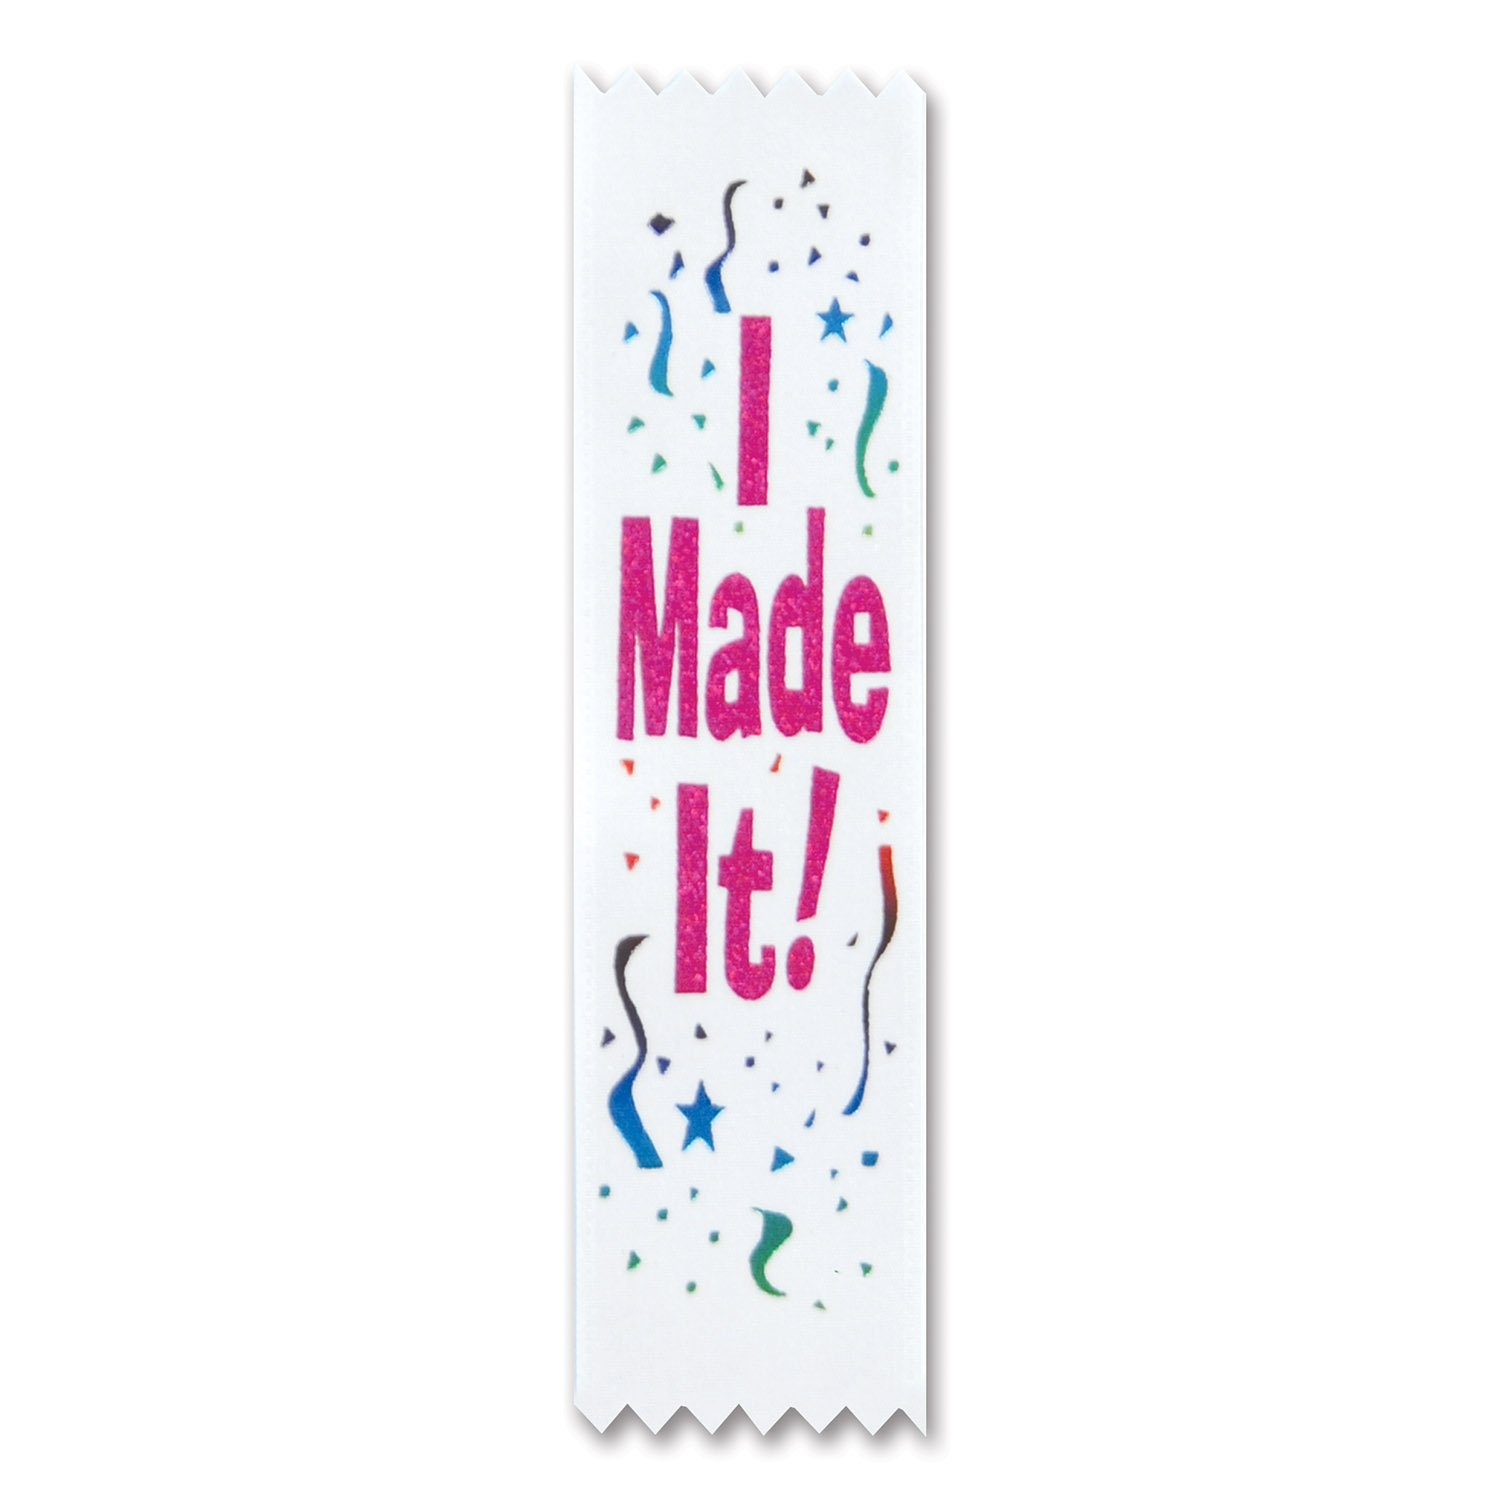 11//2 by 61//4-Inch Beistle VP184 Wow Value Ribbons 30-Pack